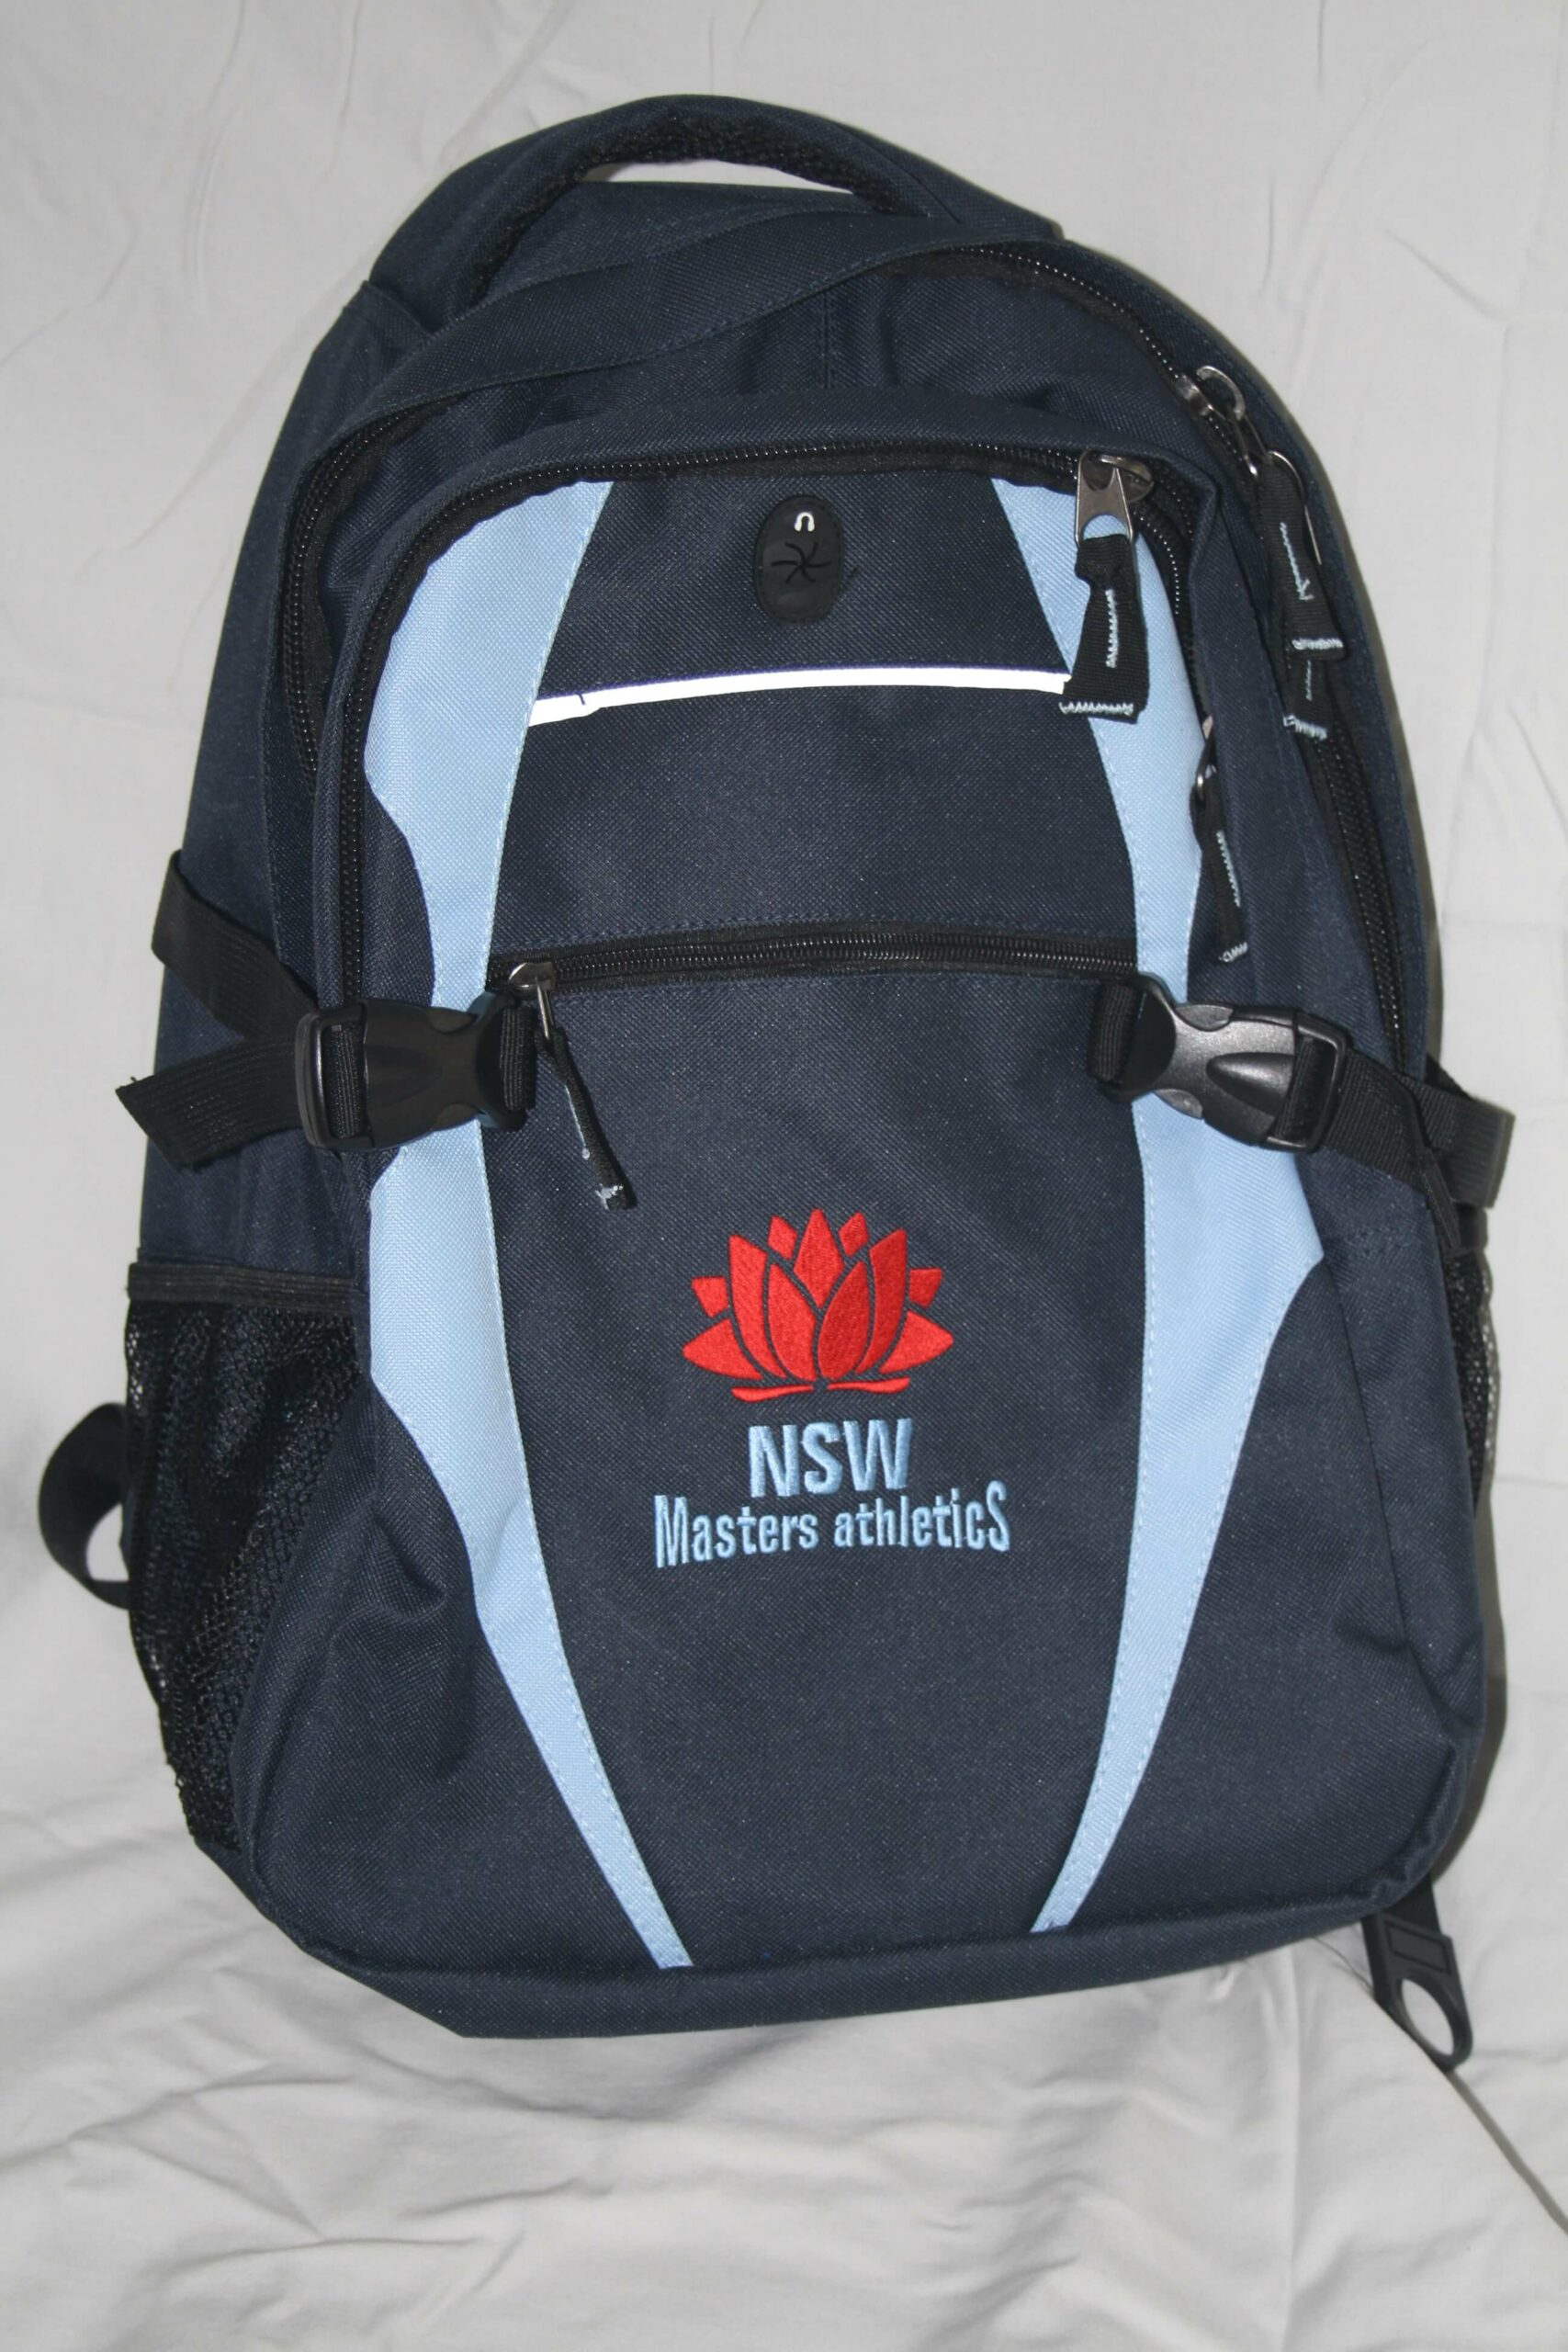 NSWMA Backpack image